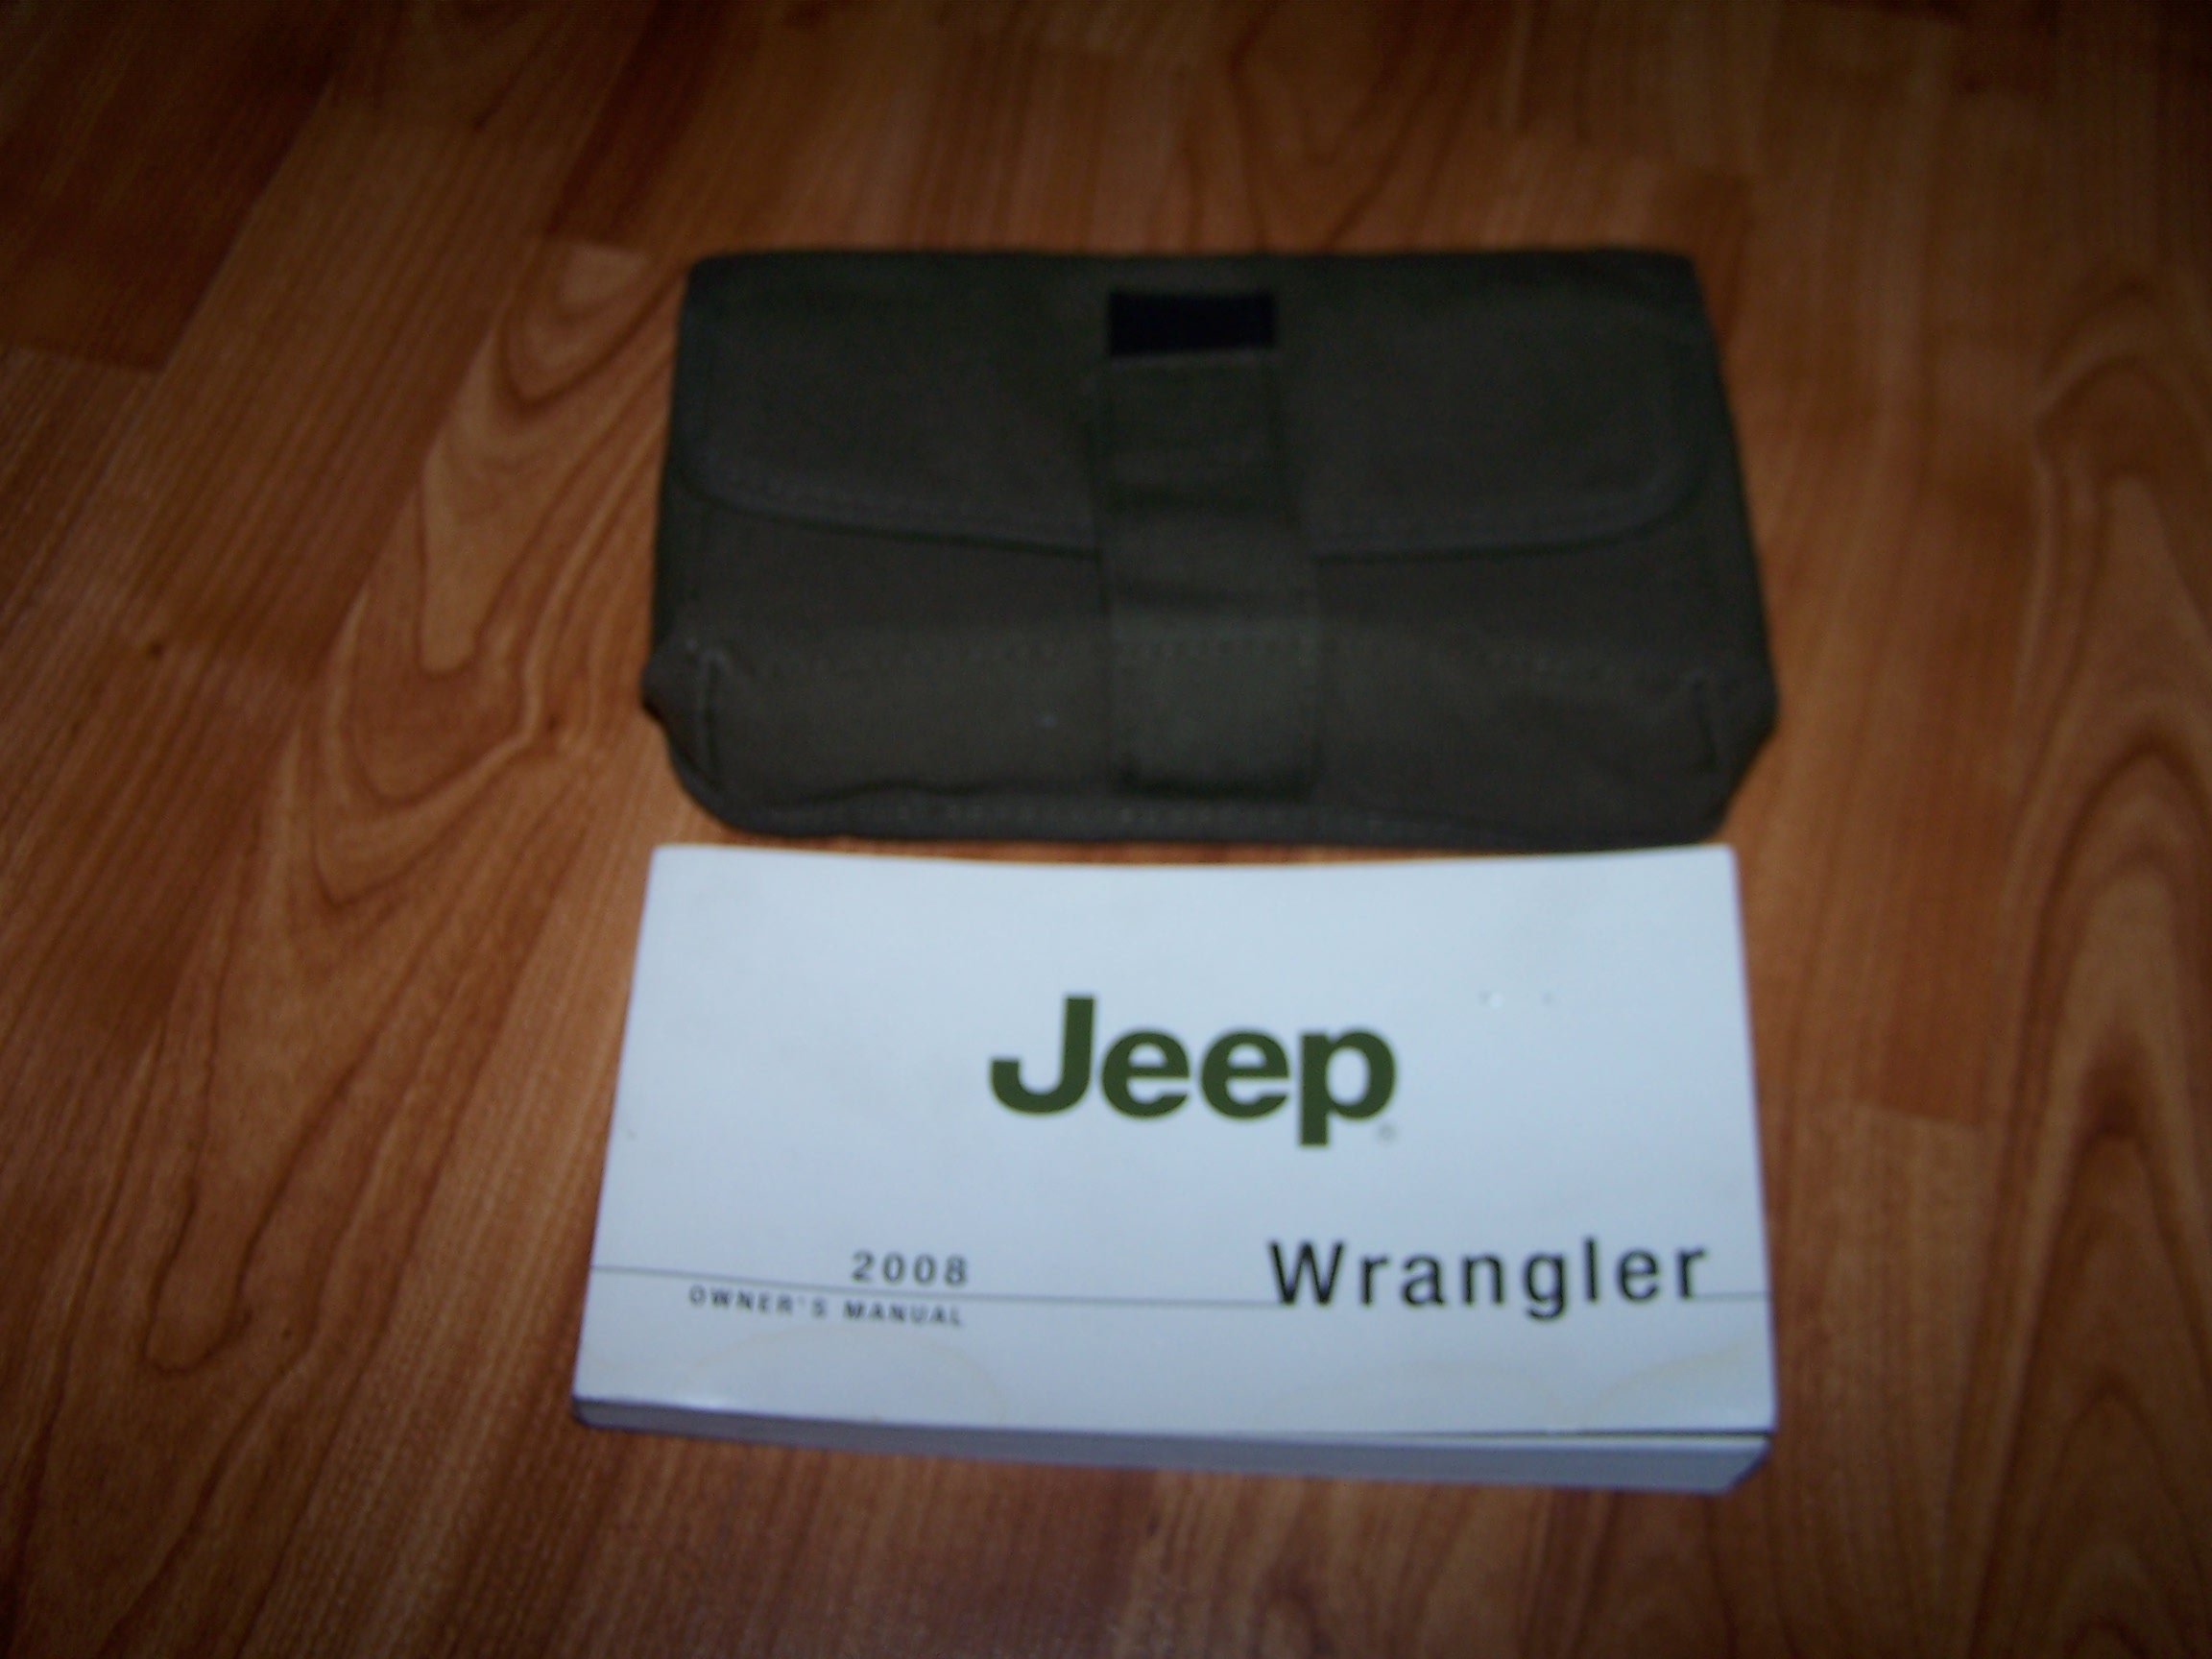 2008 jeep wrangler owners manual jeep amazon com books rh amazon com jeep tj service manual jeep wrangler owners manual